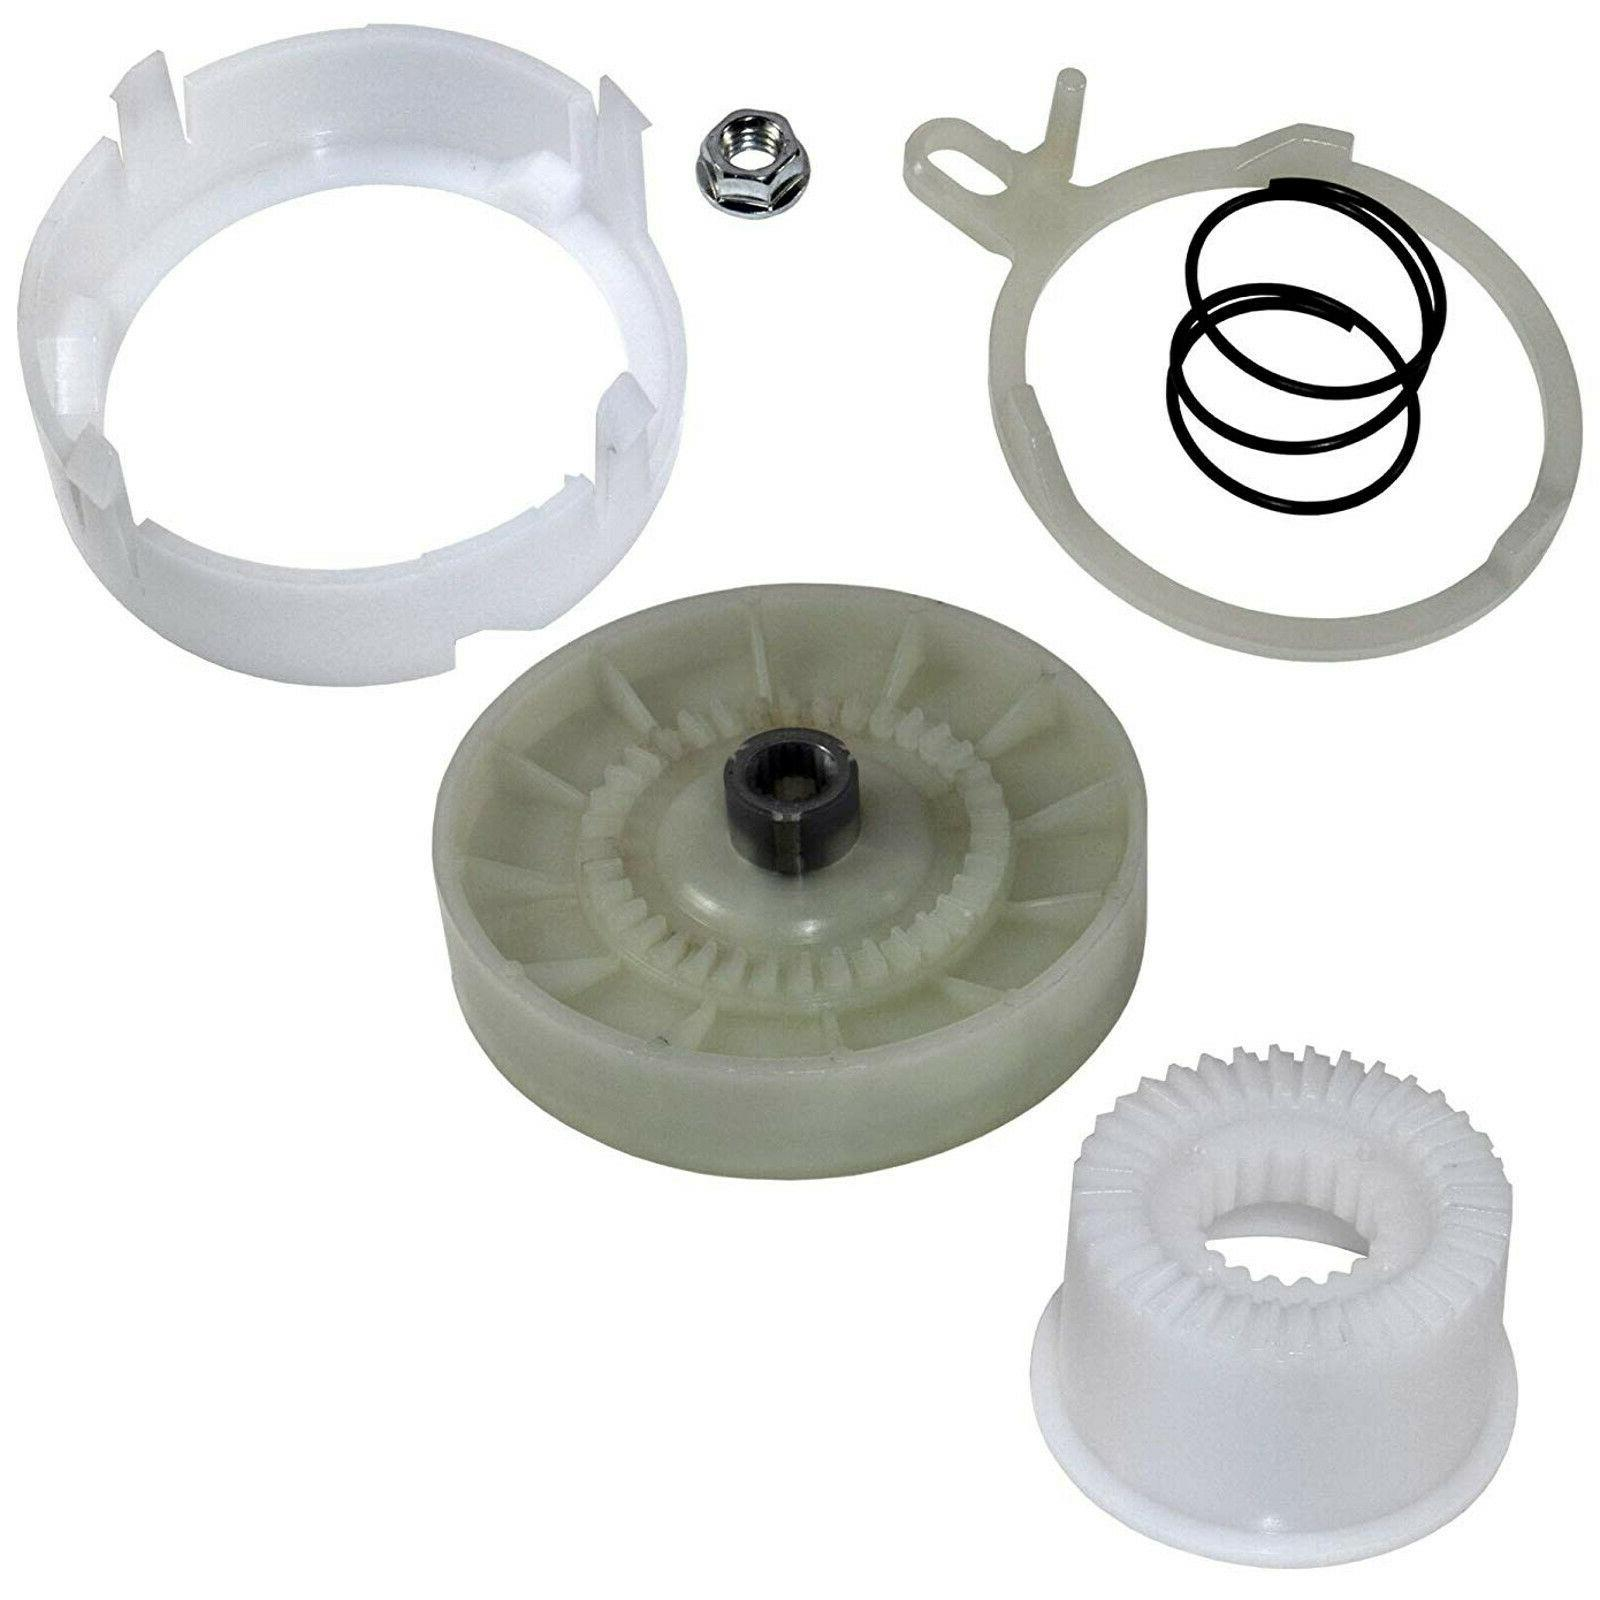 cam clutch kit for kenmore washer drive